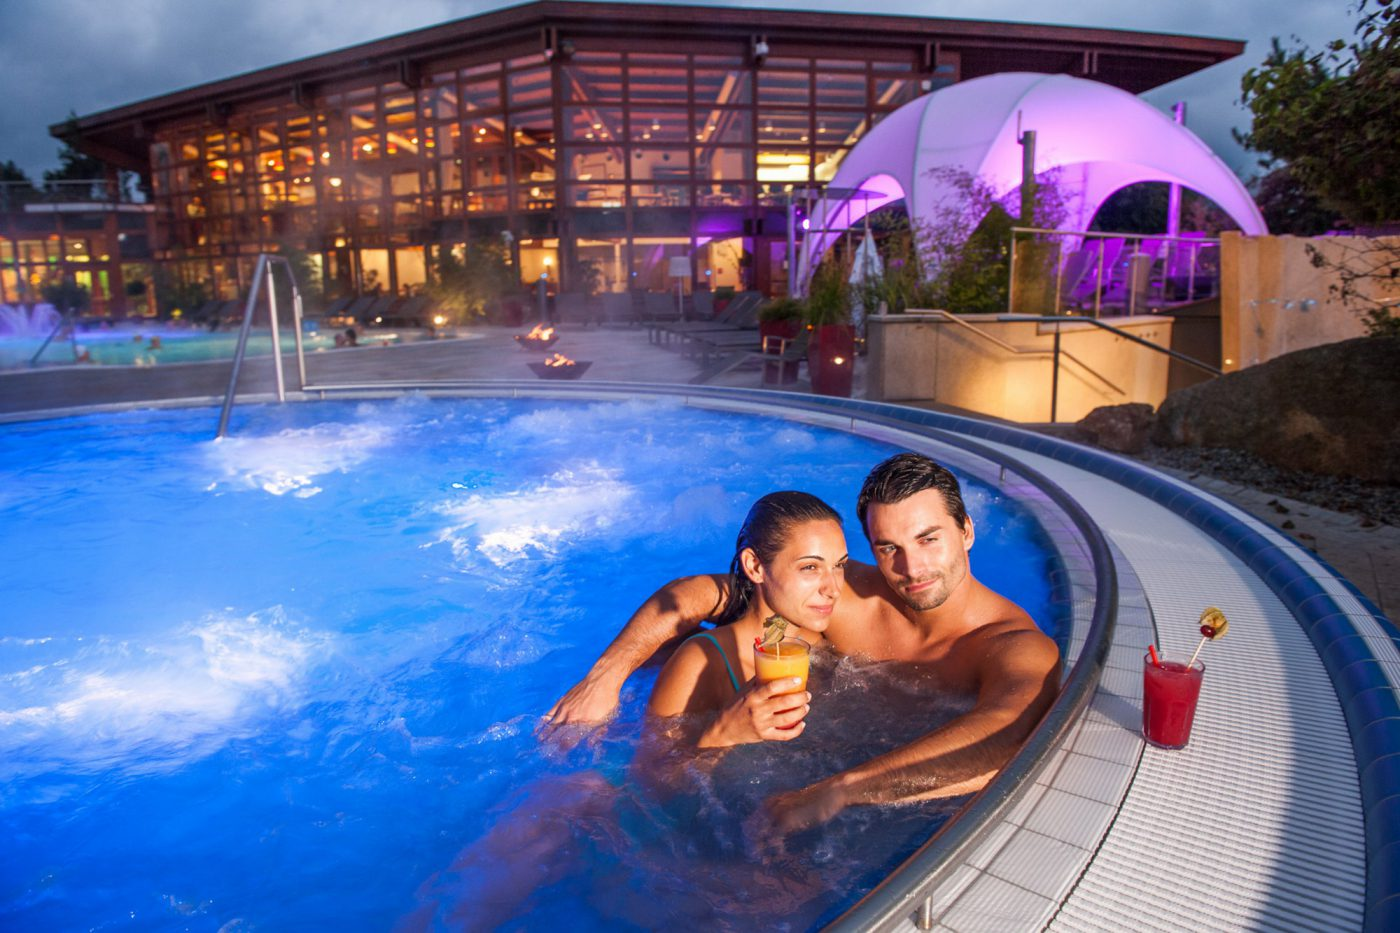 obermain_therme_thermenmeer_whirlpool_cocktails